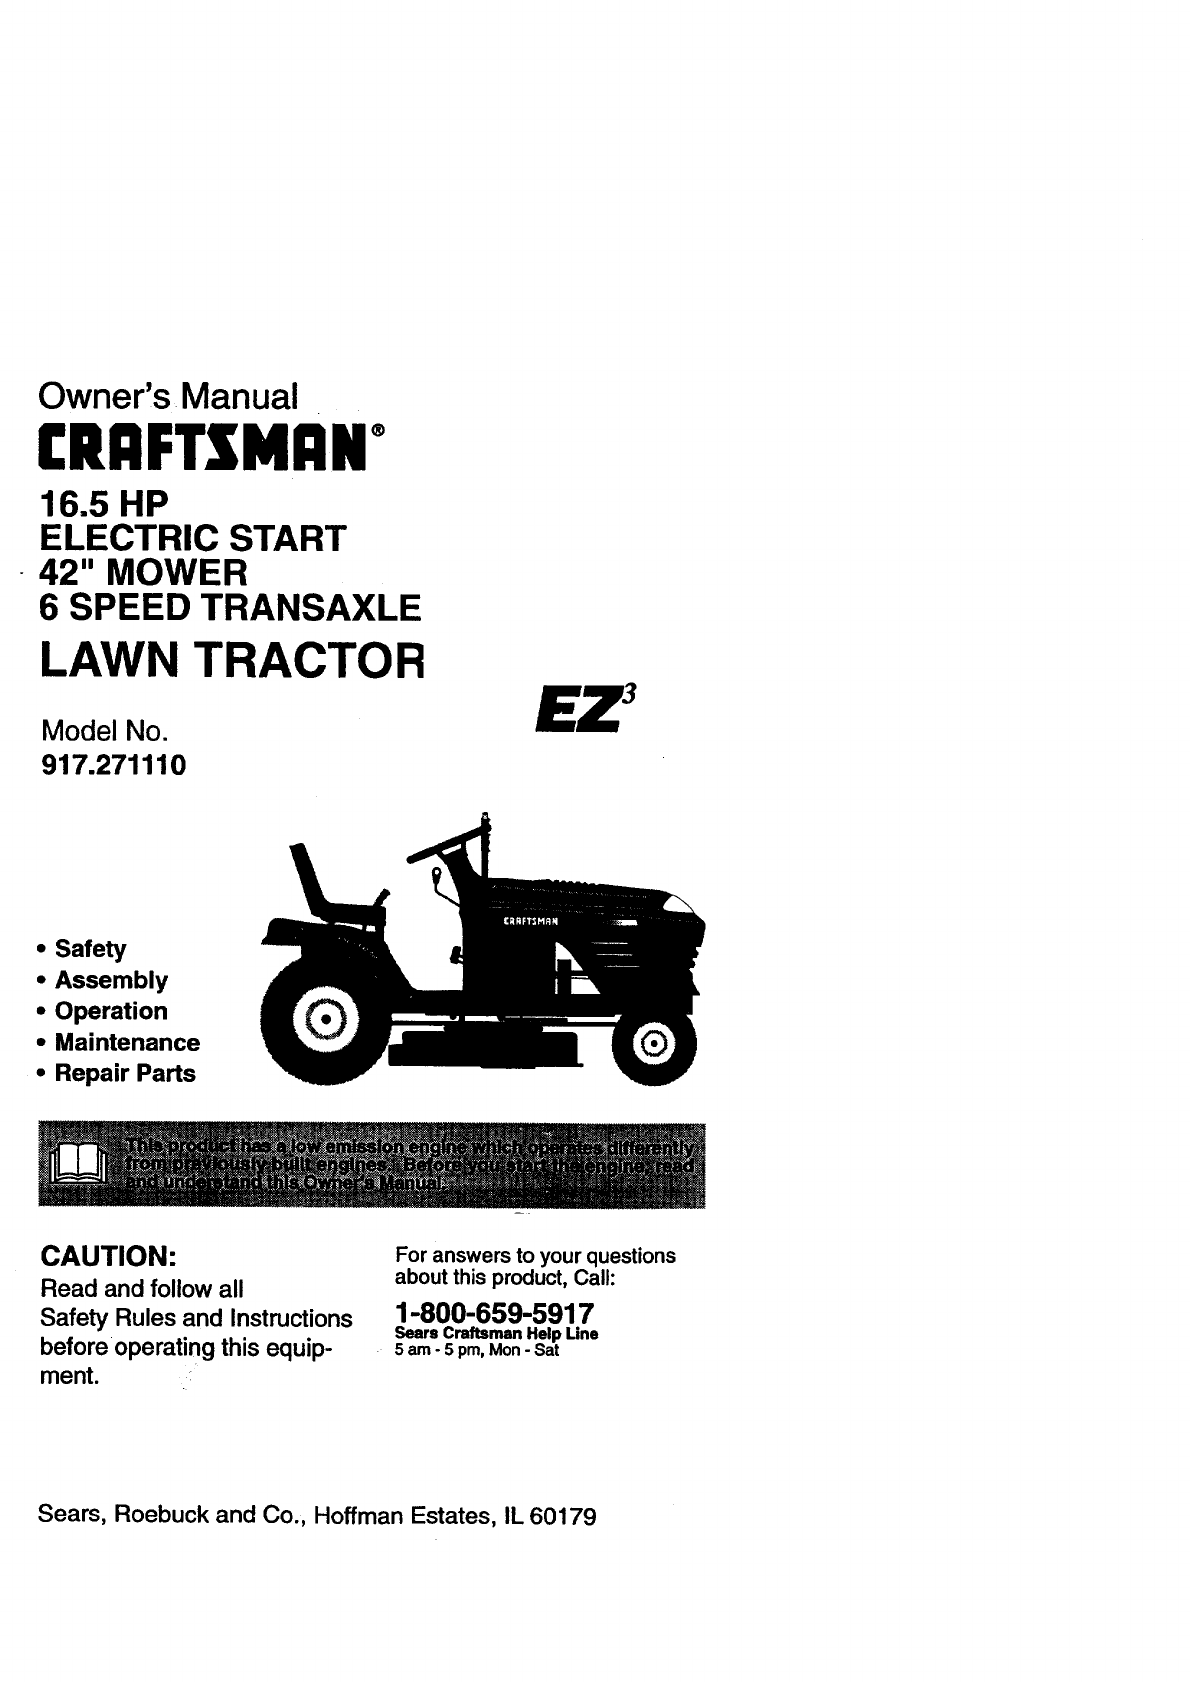 hight resolution of craftsman lawn mower 917 271110 user guide manualsonline